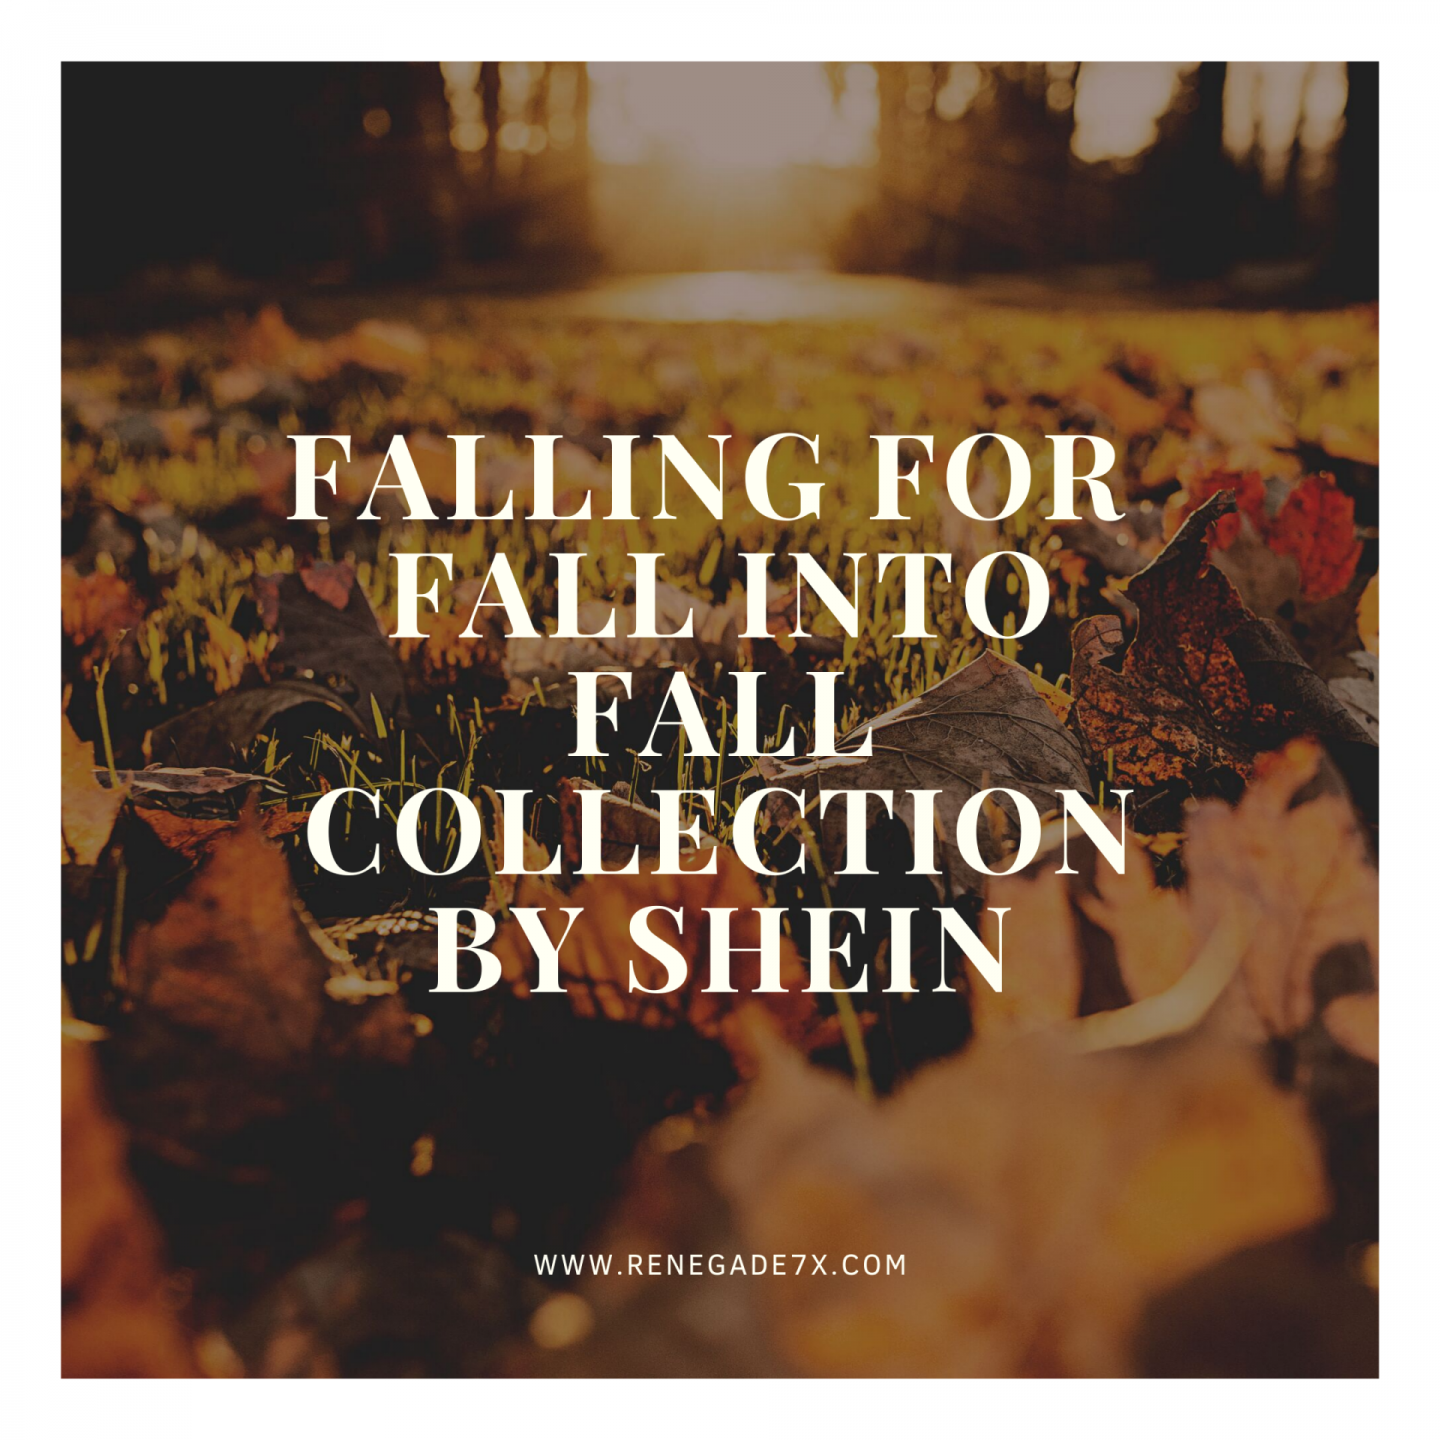 Falling for Fall into Fall collection by shein